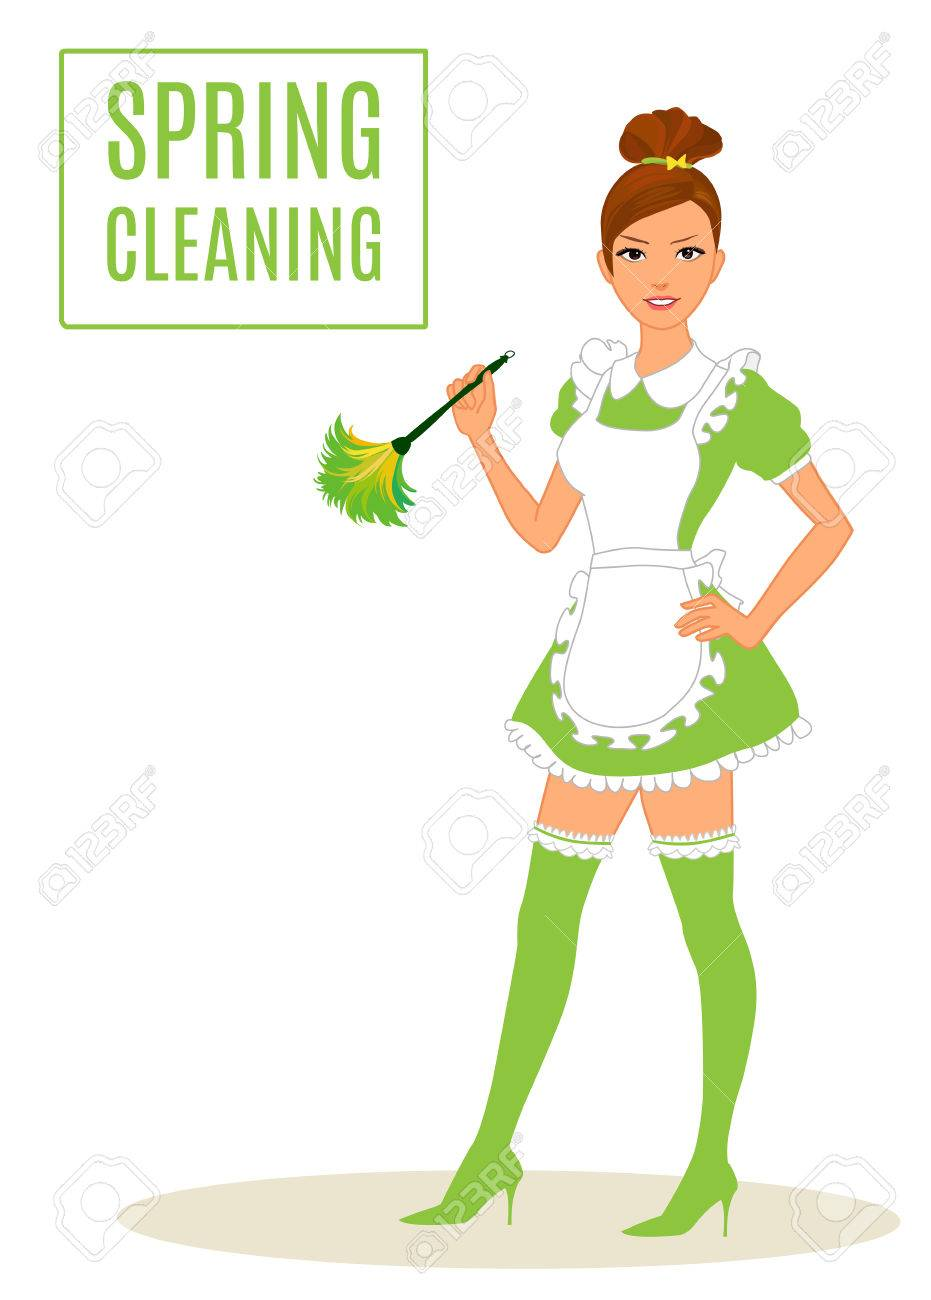 Sexy Maid, Spring Cleaning woman Lady Dusting - 39268745